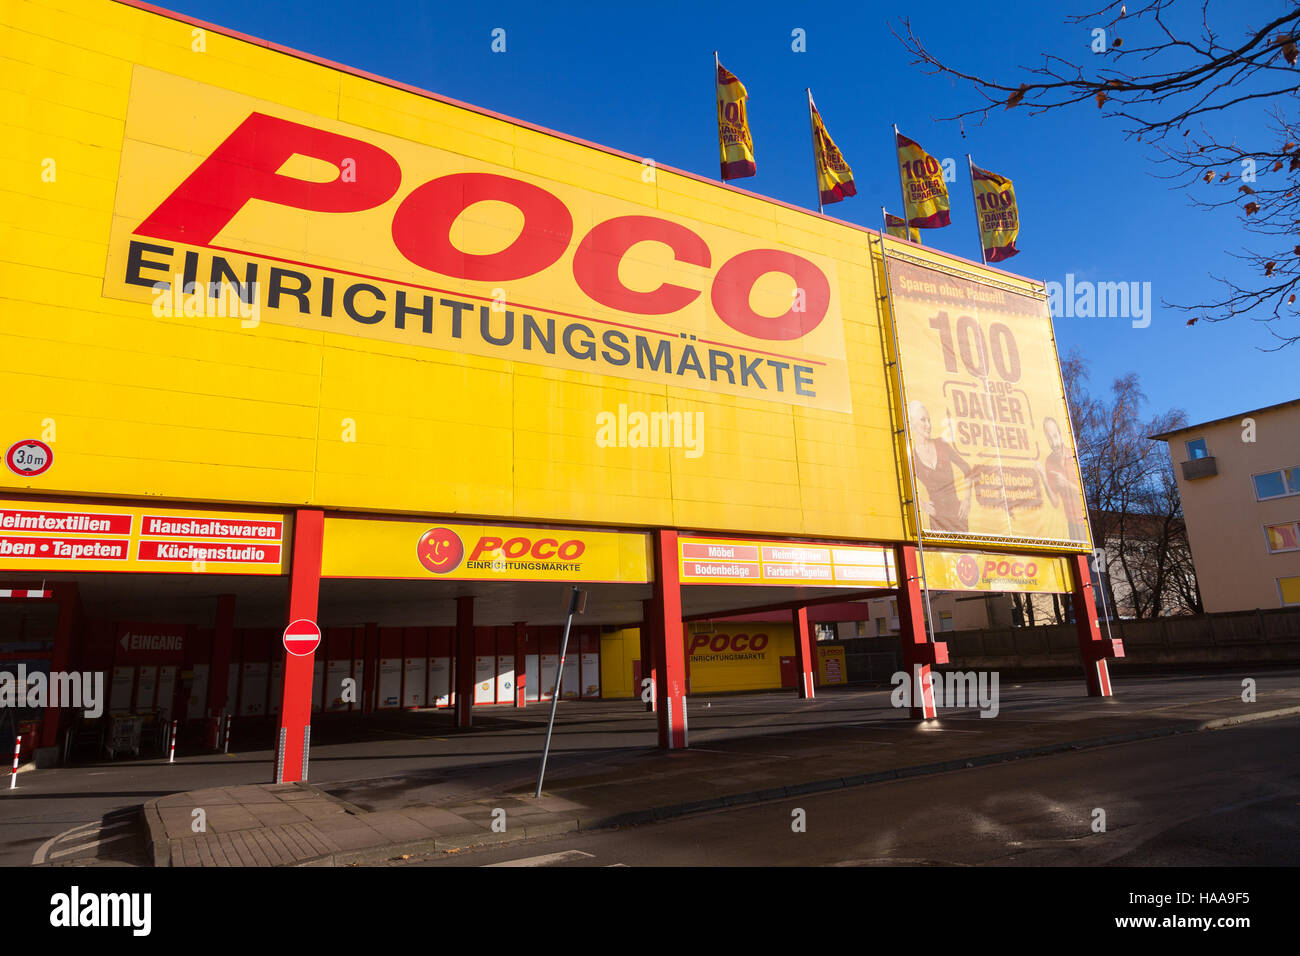 hannover germany november 27 2016 german poco stock photo 126846137 alamy. Black Bedroom Furniture Sets. Home Design Ideas